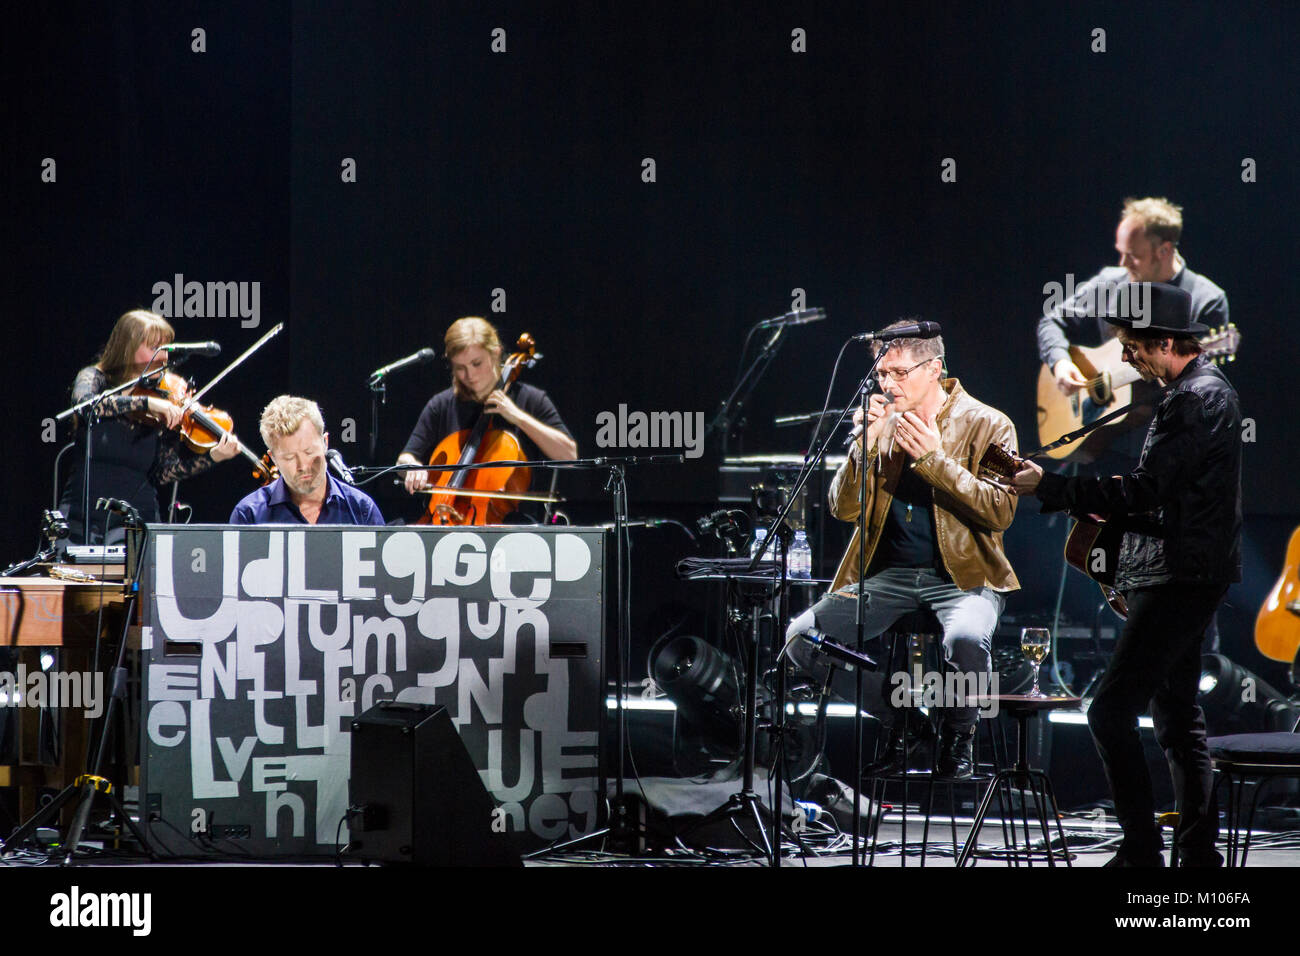 Frankfurt/Main, Germany. 24th Jan, 2018. A-ha, MTV unplugged Tour 2018, concert at Festhalle Frankfurt. Norwegian - Stock Image